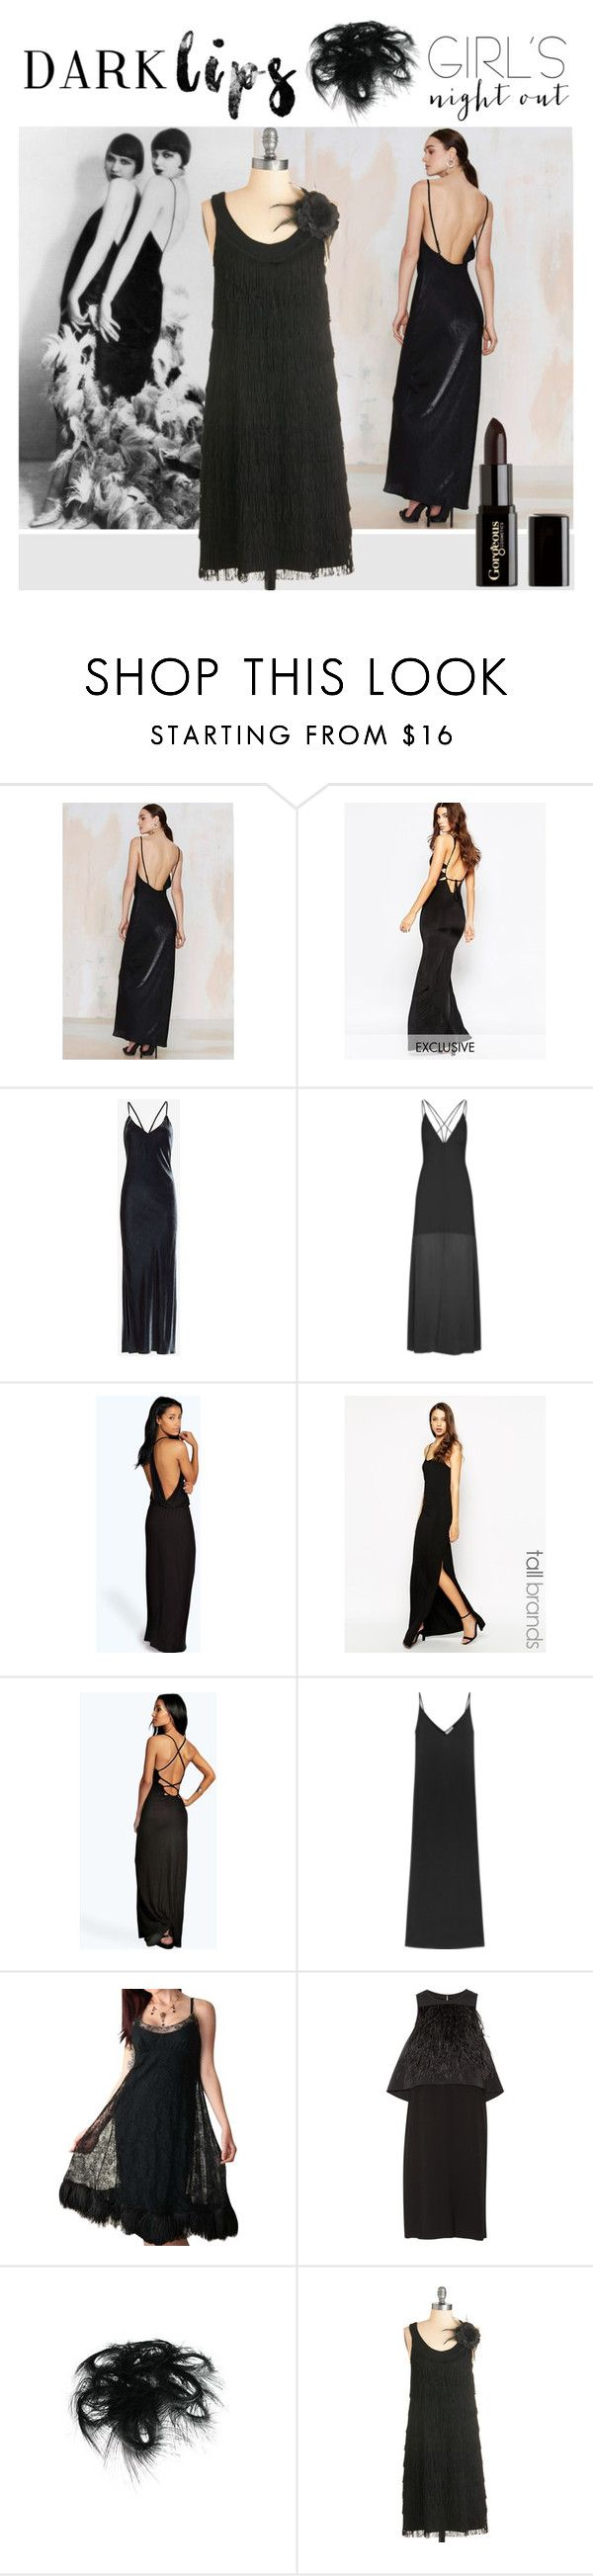 """Dare to Wear: Super Dark Lipstick"" by yours-styling-best-friend ❤ liked on Polyvore featuring beauty, Rise of Dawn, NaaNaa, Exclusive for Intermix, Topshop, Boohoo, TTYA, Equipment, Vintage and TIBI"